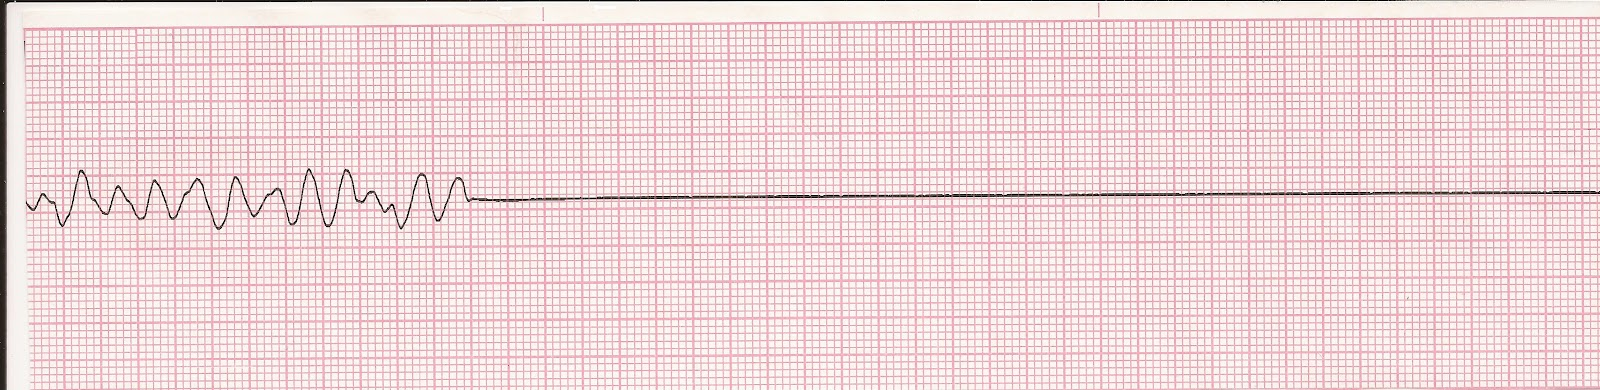 asystole rhythm strip